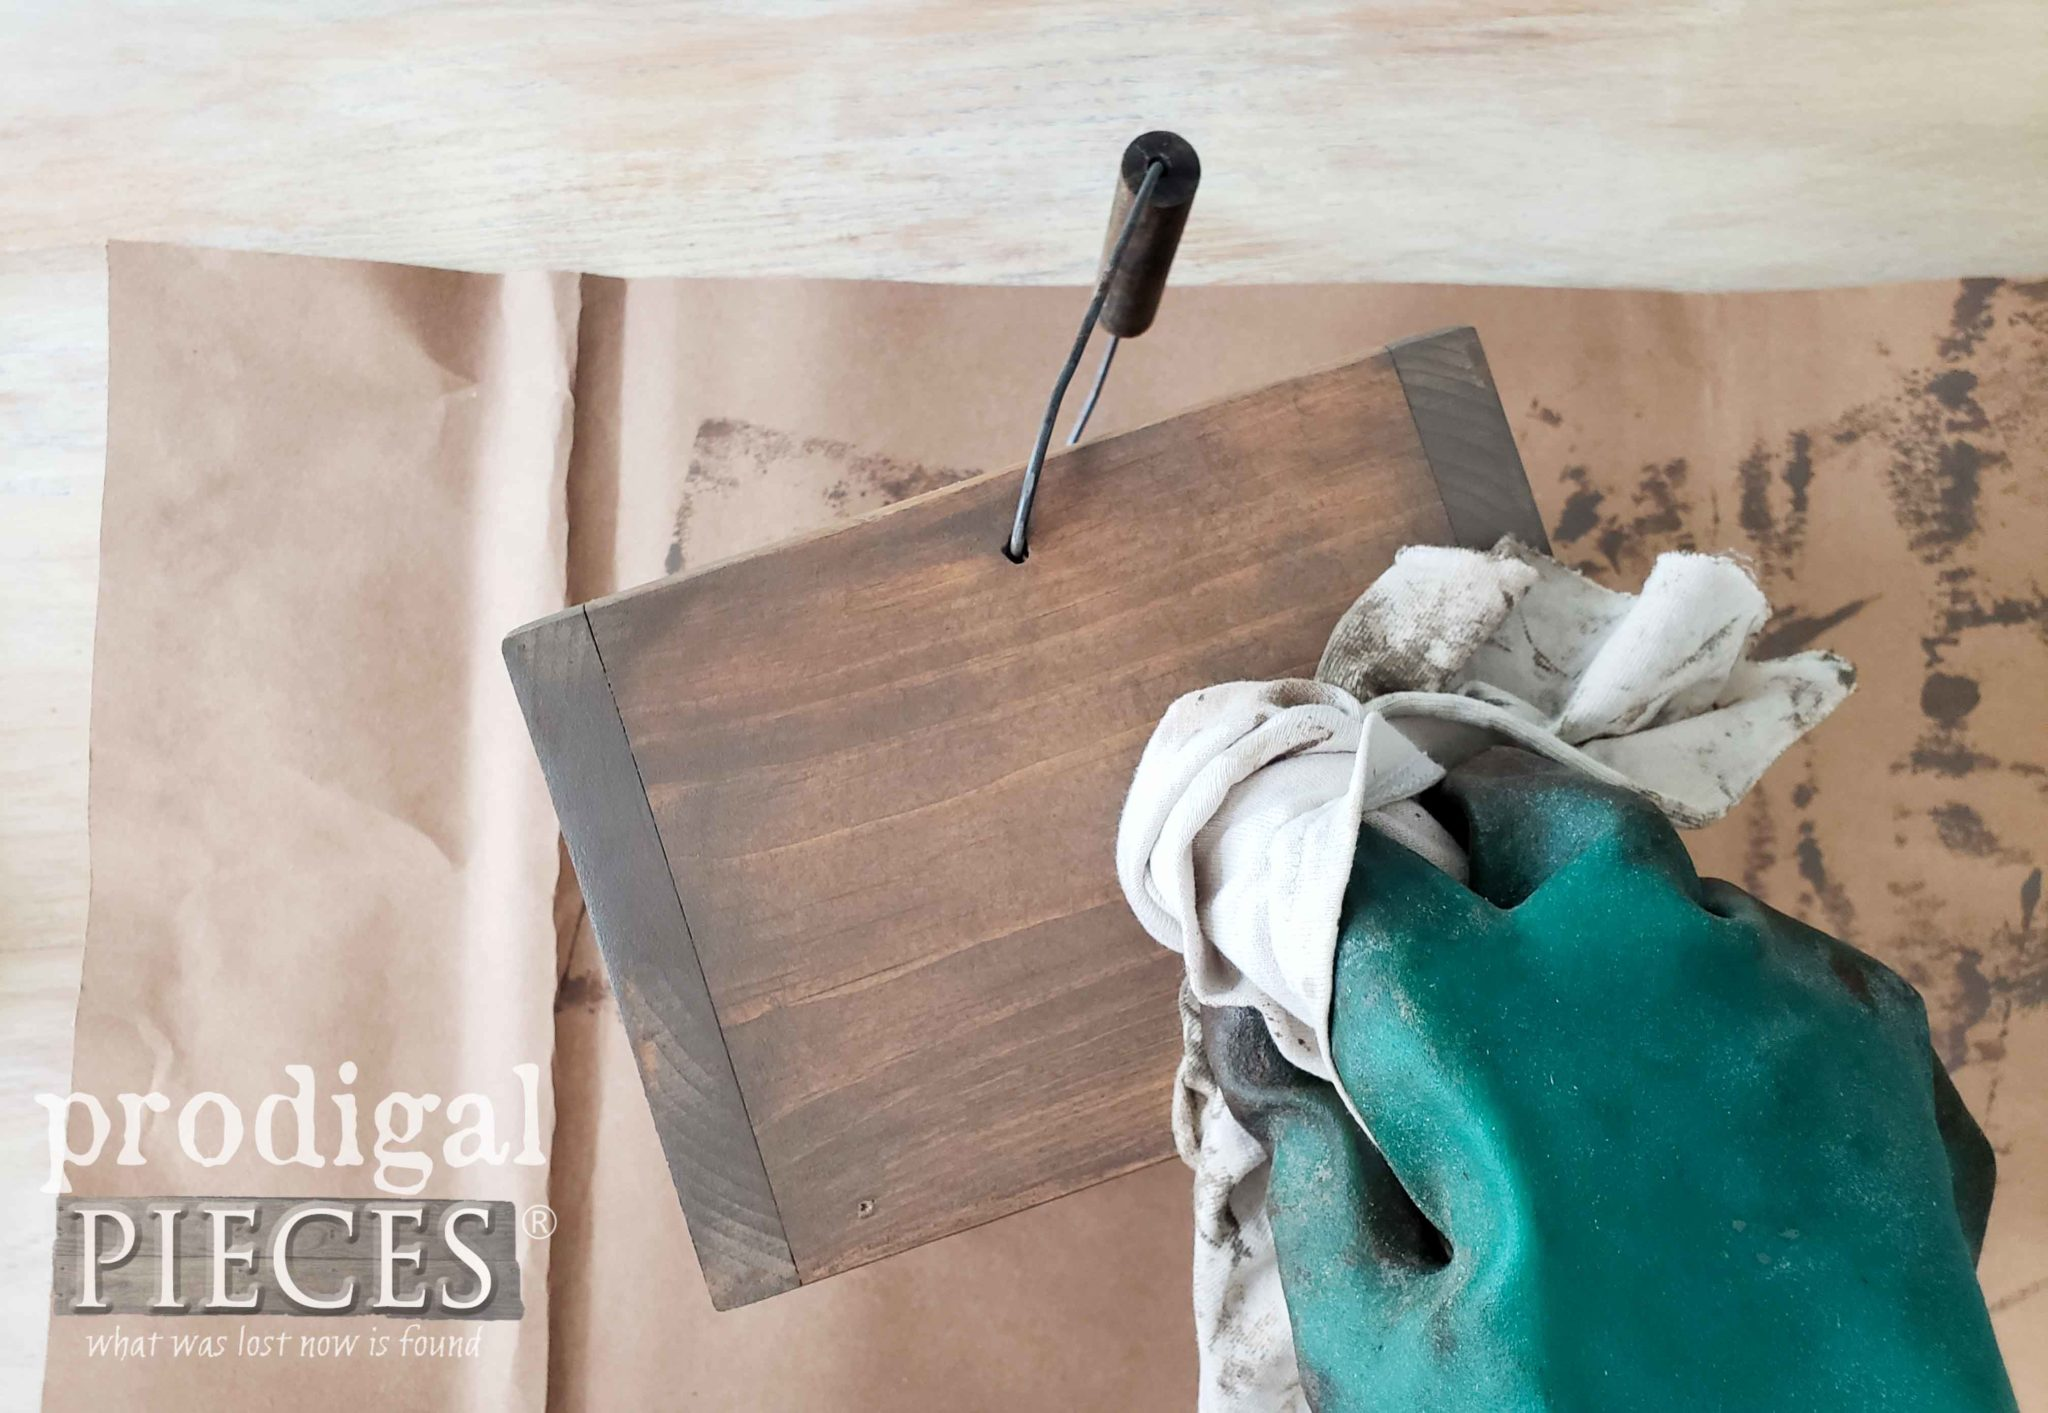 Wiping off excess stain on kitchen caddy | prodigalpieces.com